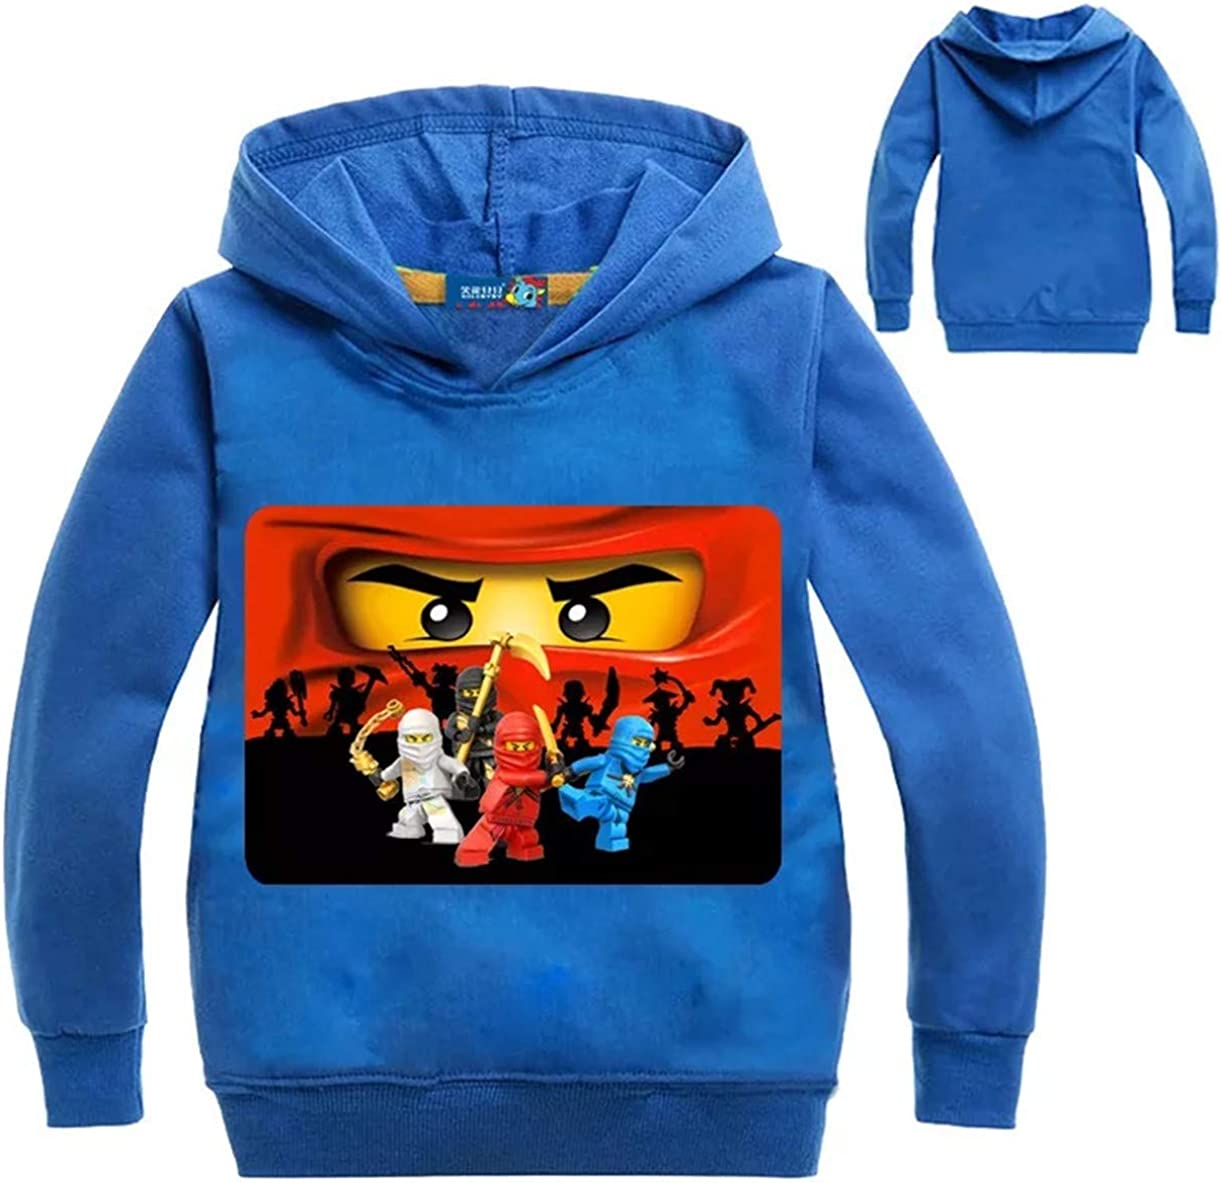 fashion 1938 Boys Girls Long Sleeve Hoodies-Unisex Cartoon Pullover Hooded Tops for Kids 2T-18